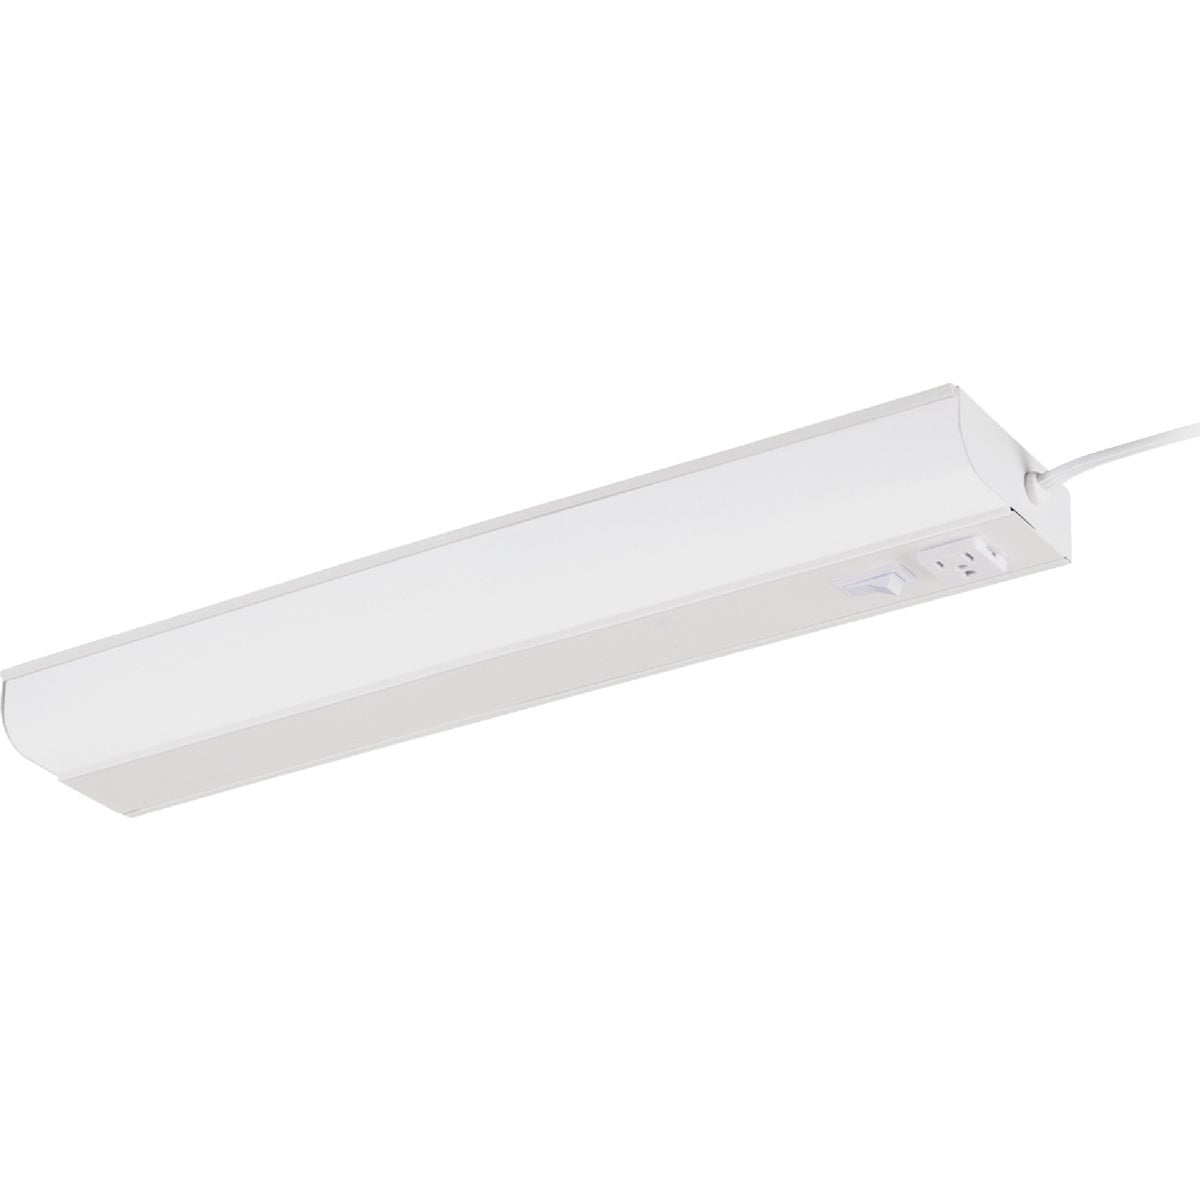 "18"" UNDERCABINET LIGHT - G9318P-T8-WH-I by Good Earth Lighting"